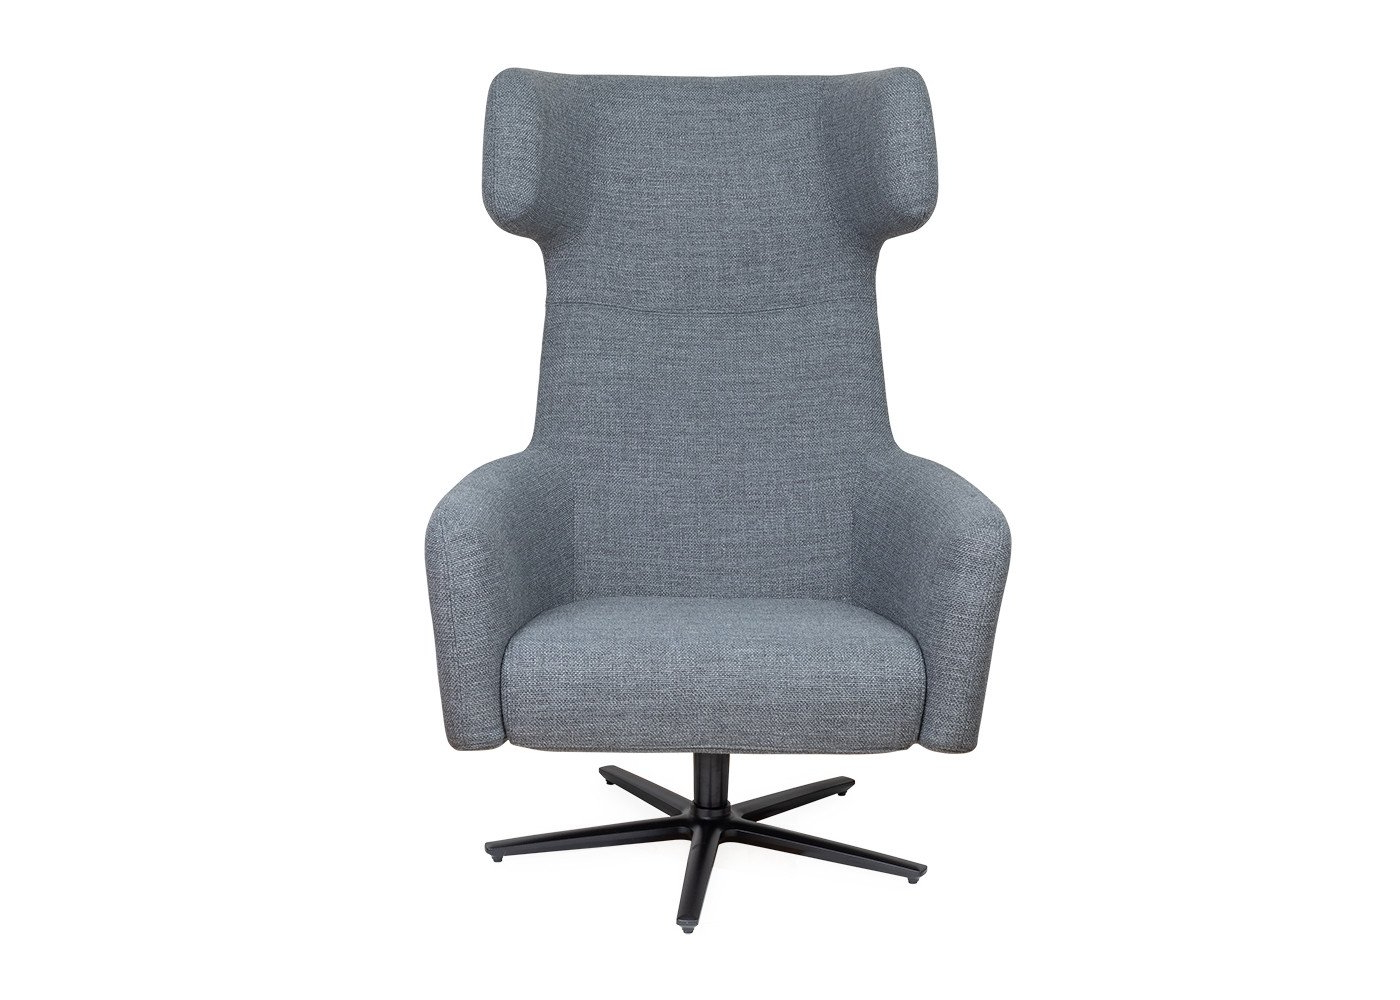 Dark Grey Swivel Chairs Pertaining To Most Popular Havana Wing Chair Swivel Base Tundra Dark Grey – Armchairs – Sofas (View 7 of 20)